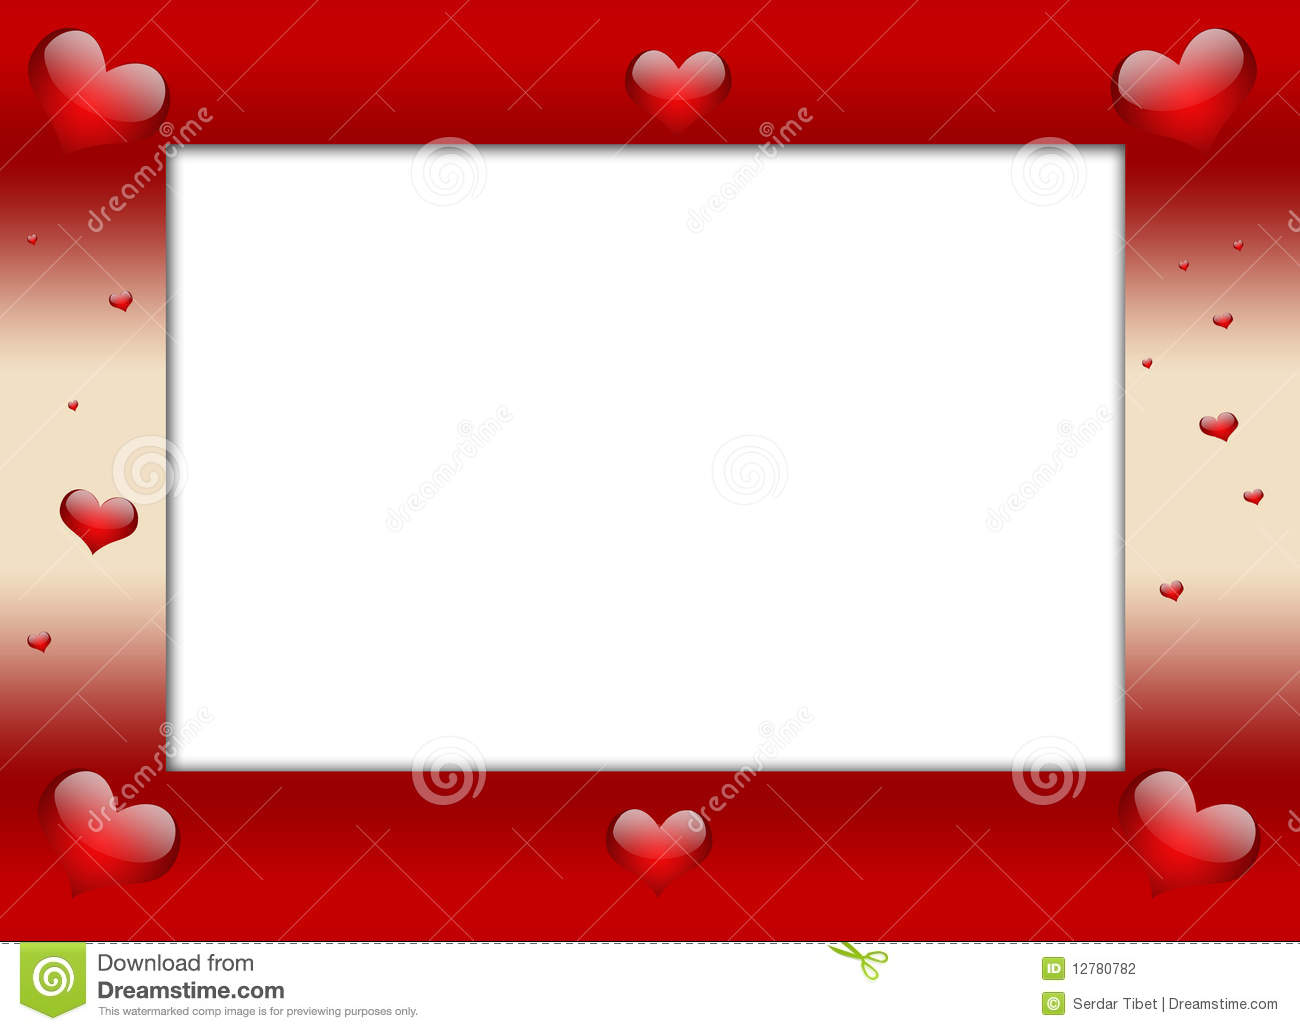 valentines day frame stock photographyimage12780782